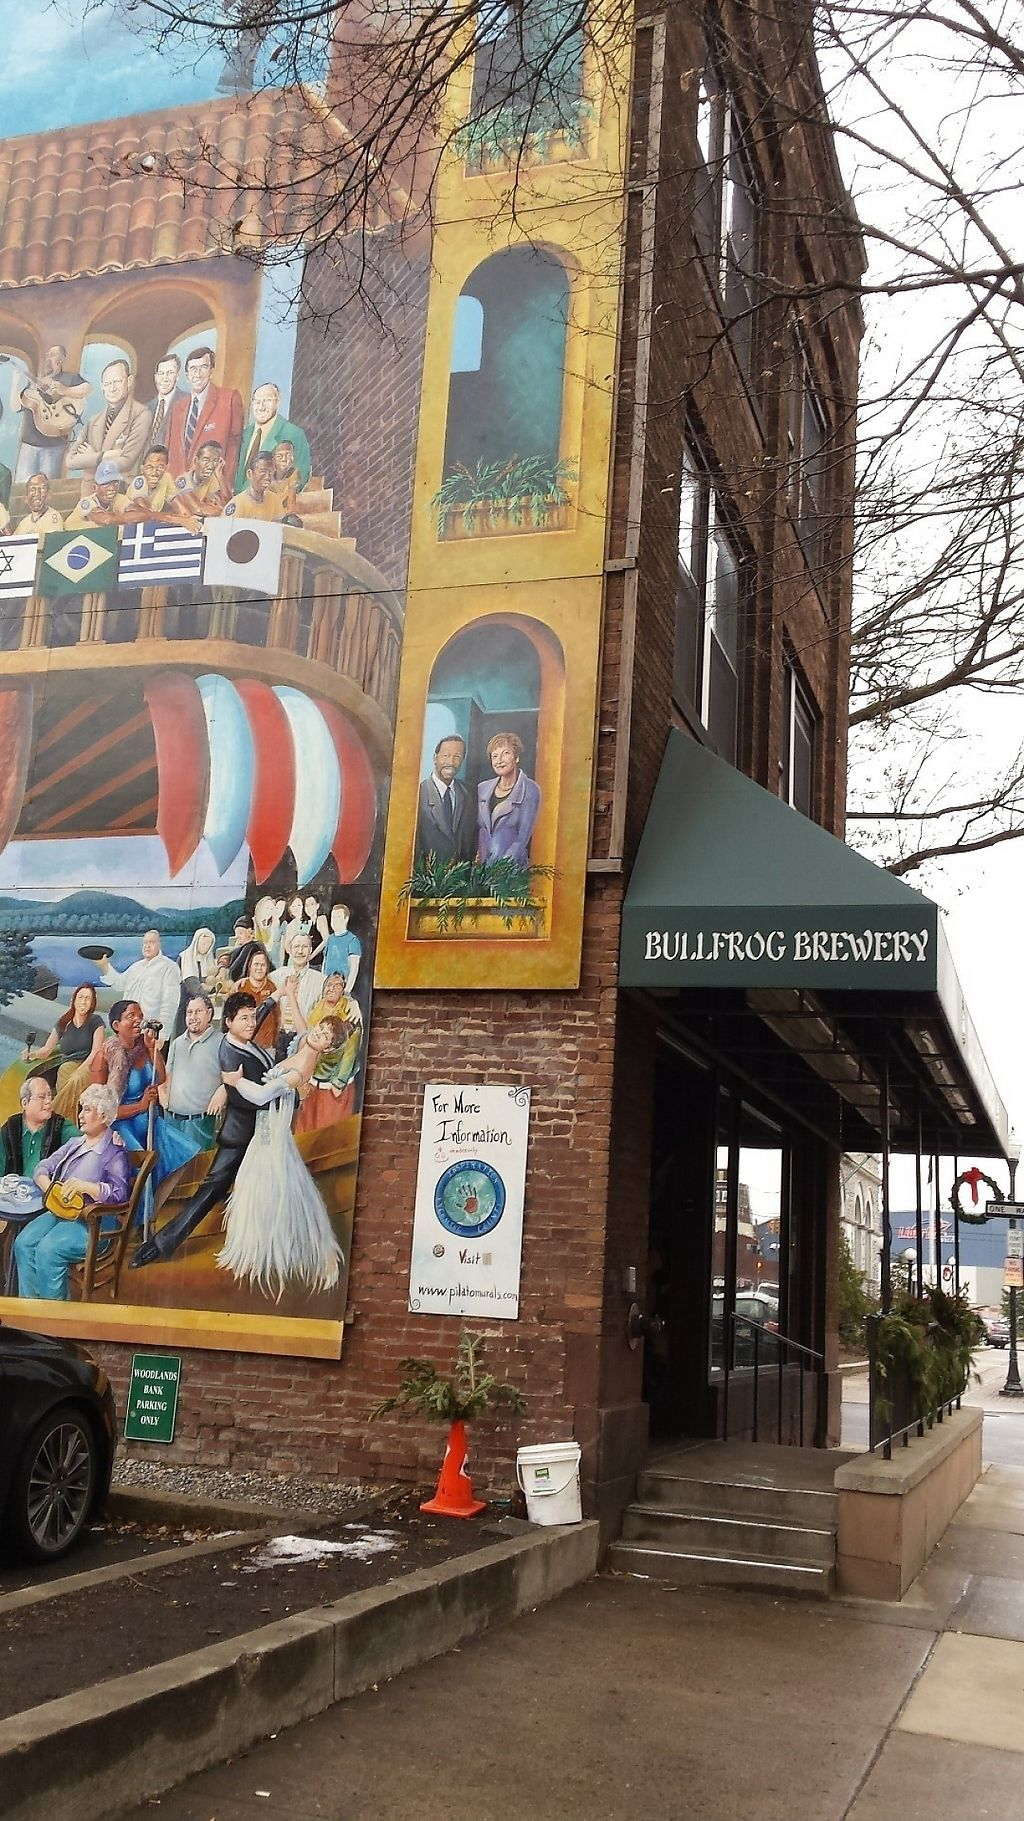 "Photo of Bullfrog Brewery and Restaurant  by <a href=""/members/profile/American%20Vegan"">American Vegan</a> <br/>Bullfrog <br/> January 2, 2017  - <a href='/contact/abuse/image/35290/207259'>Report</a>"